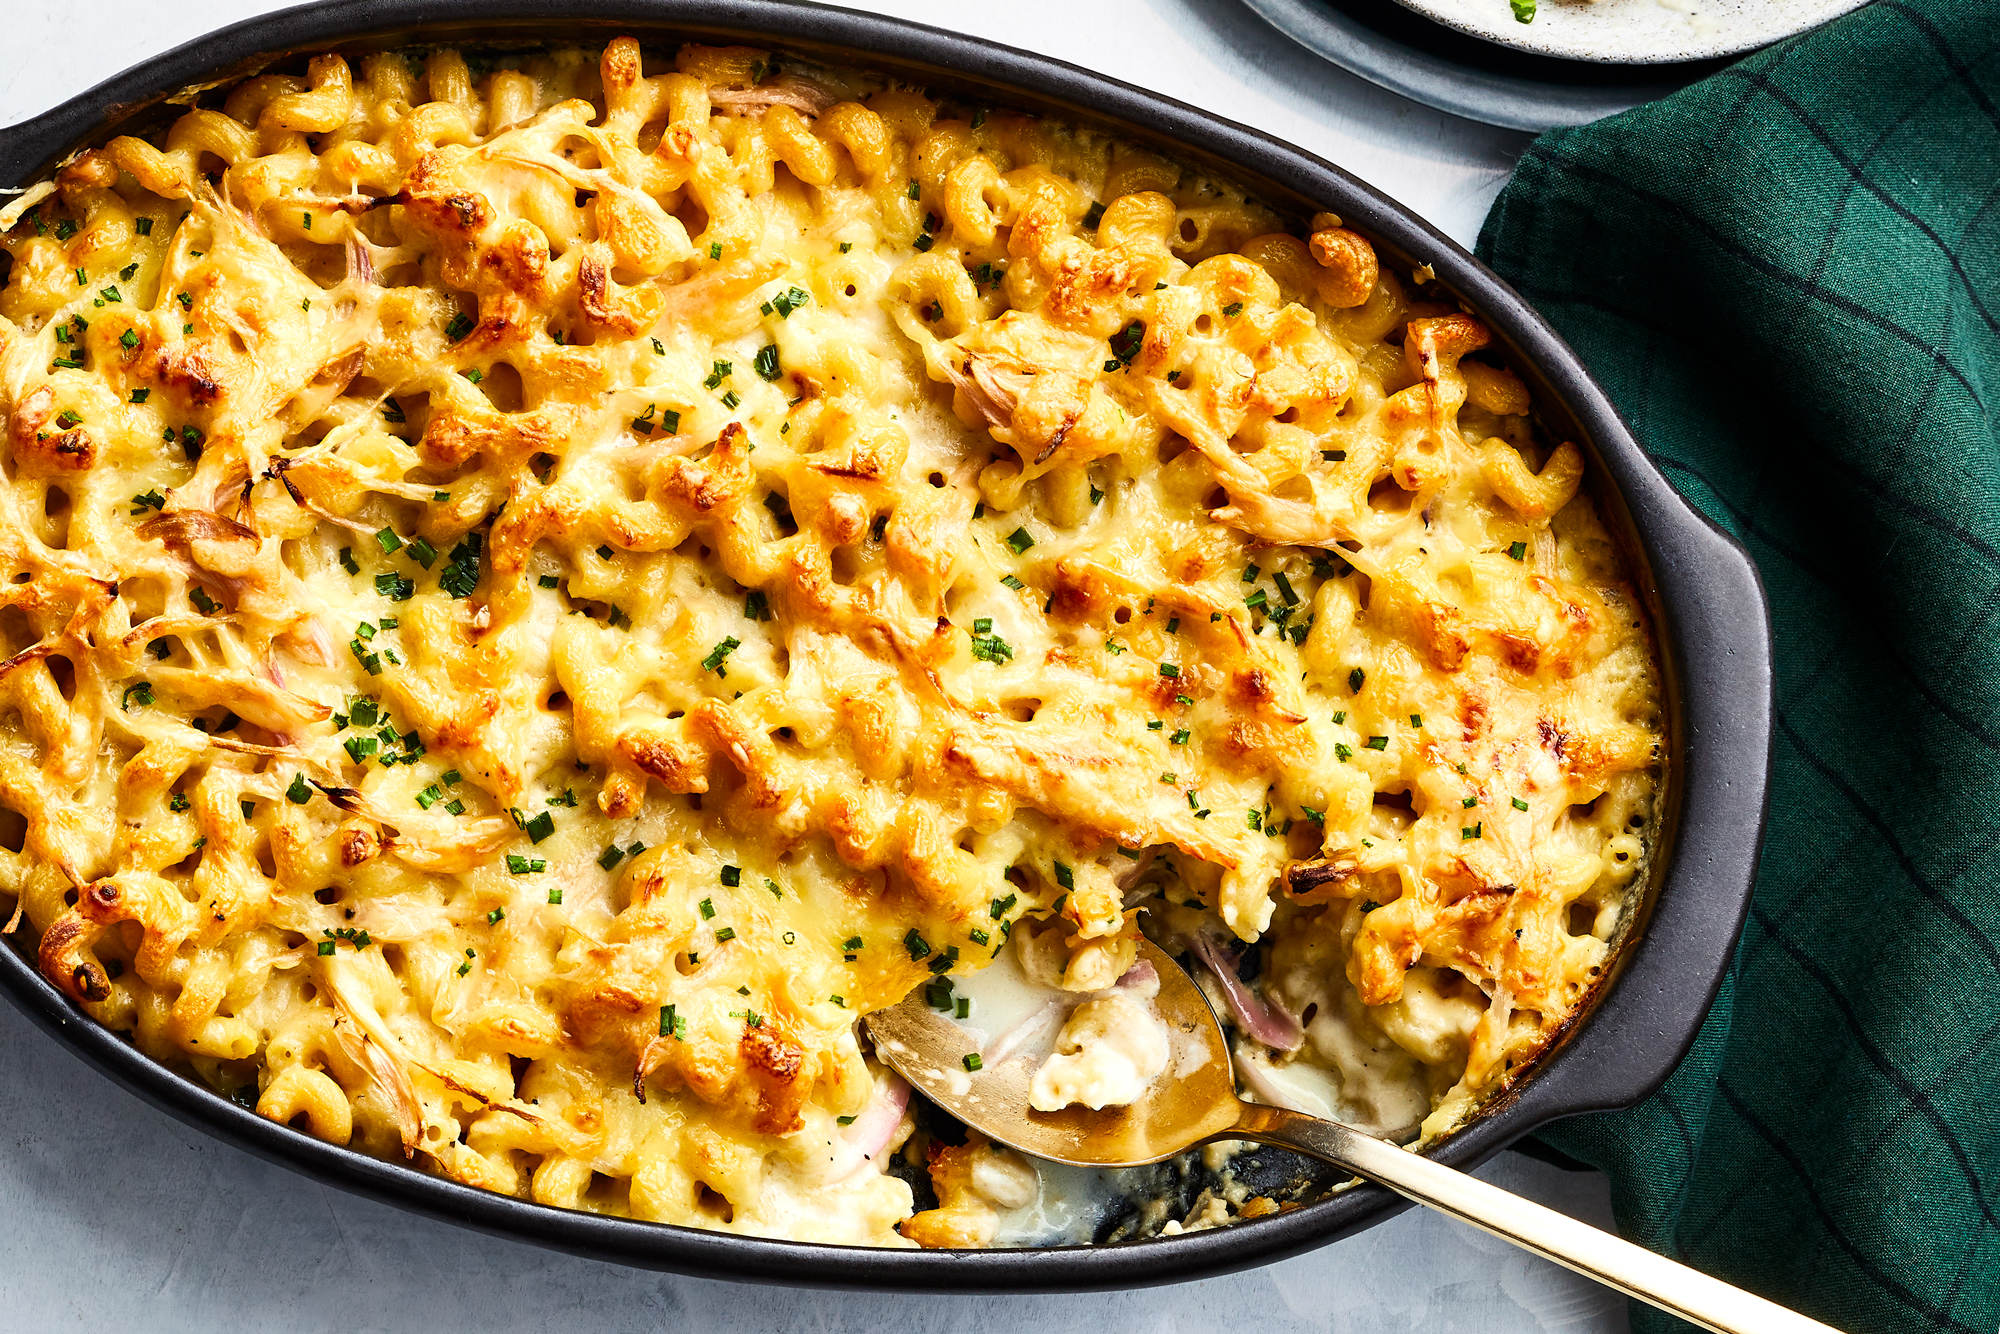 Raclette gruyere macaroni and cheese with pickled shallots